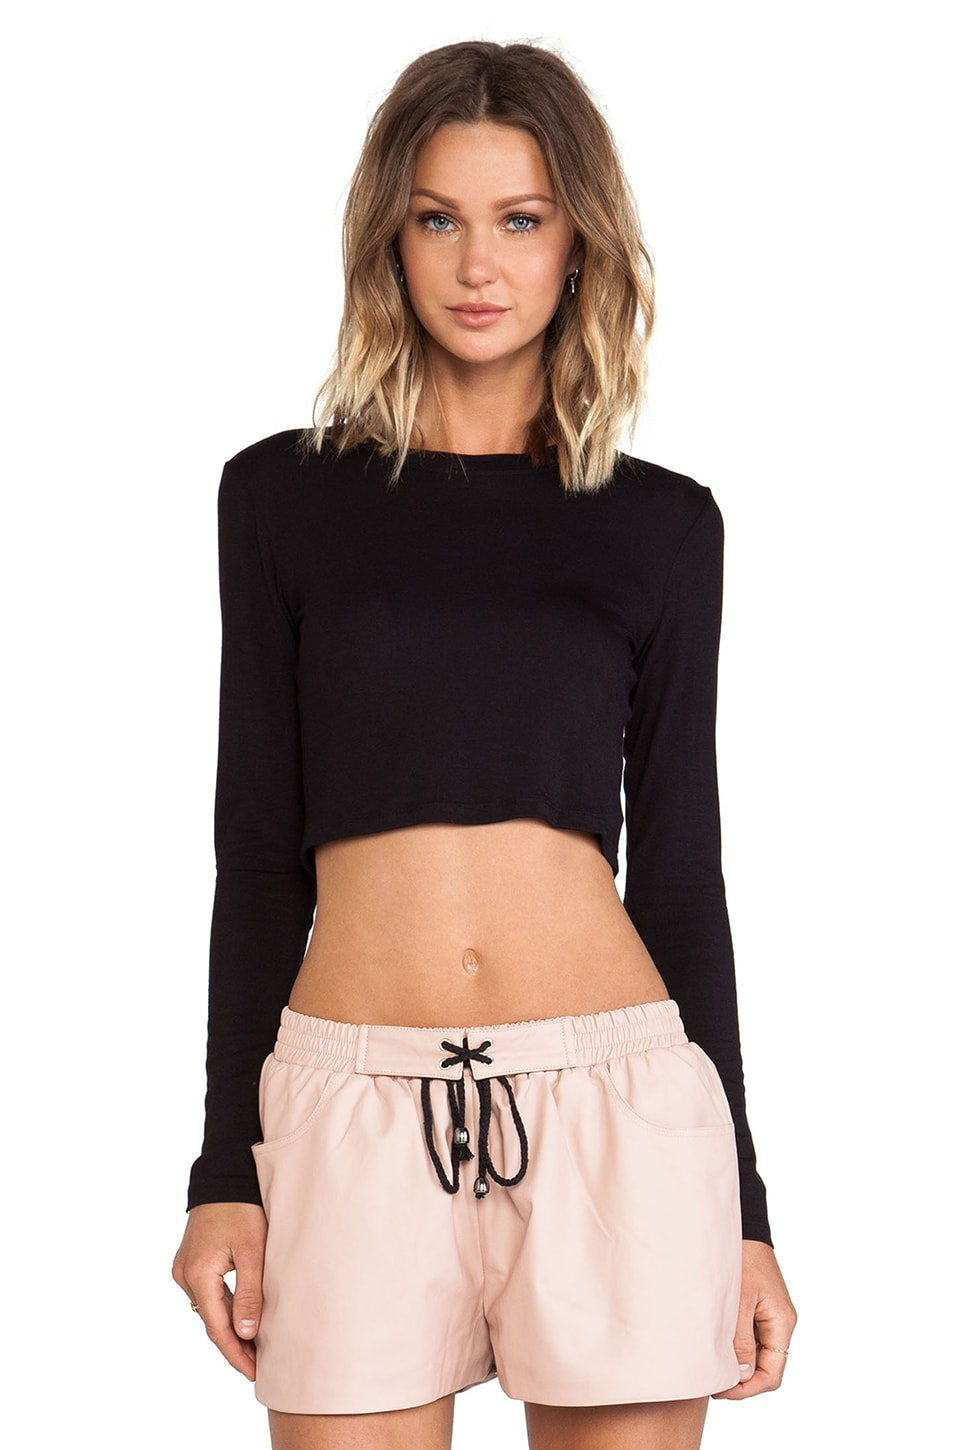 BLQ BASIQ BLQ Basics Cropped Long Sleeve Top in Black